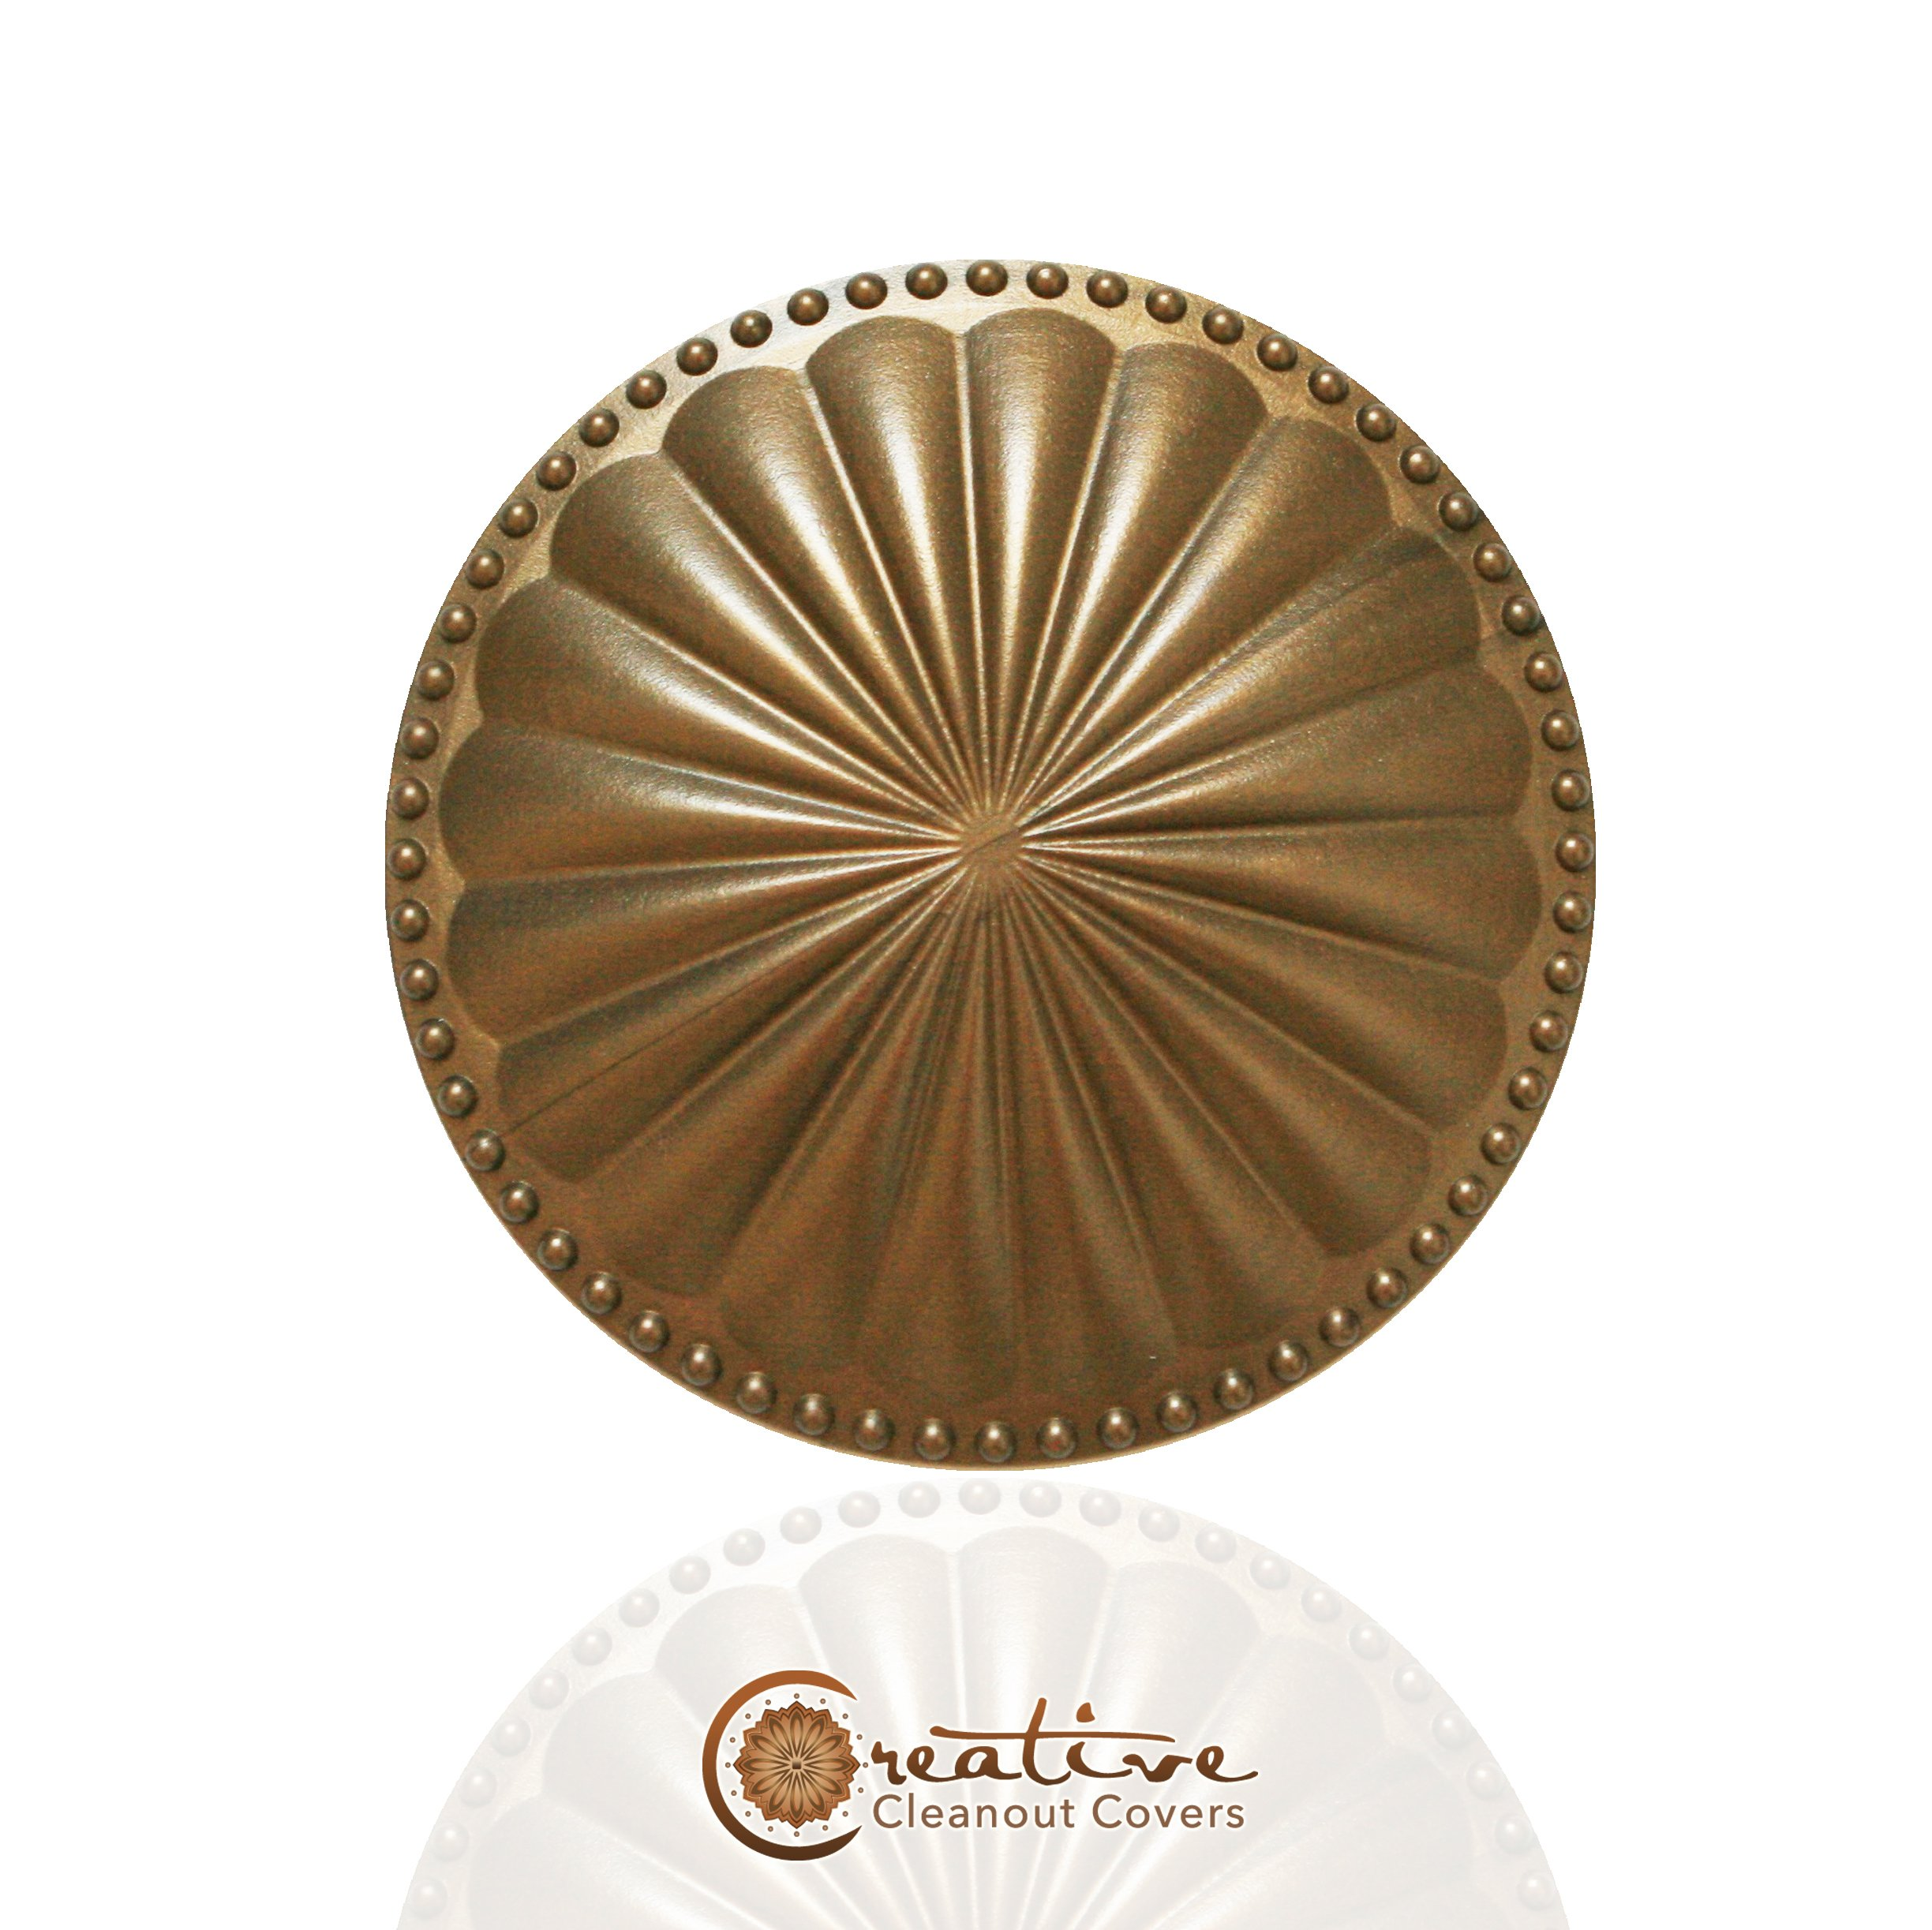 Laguna FLAT Cleanout cover, Glamour Gold